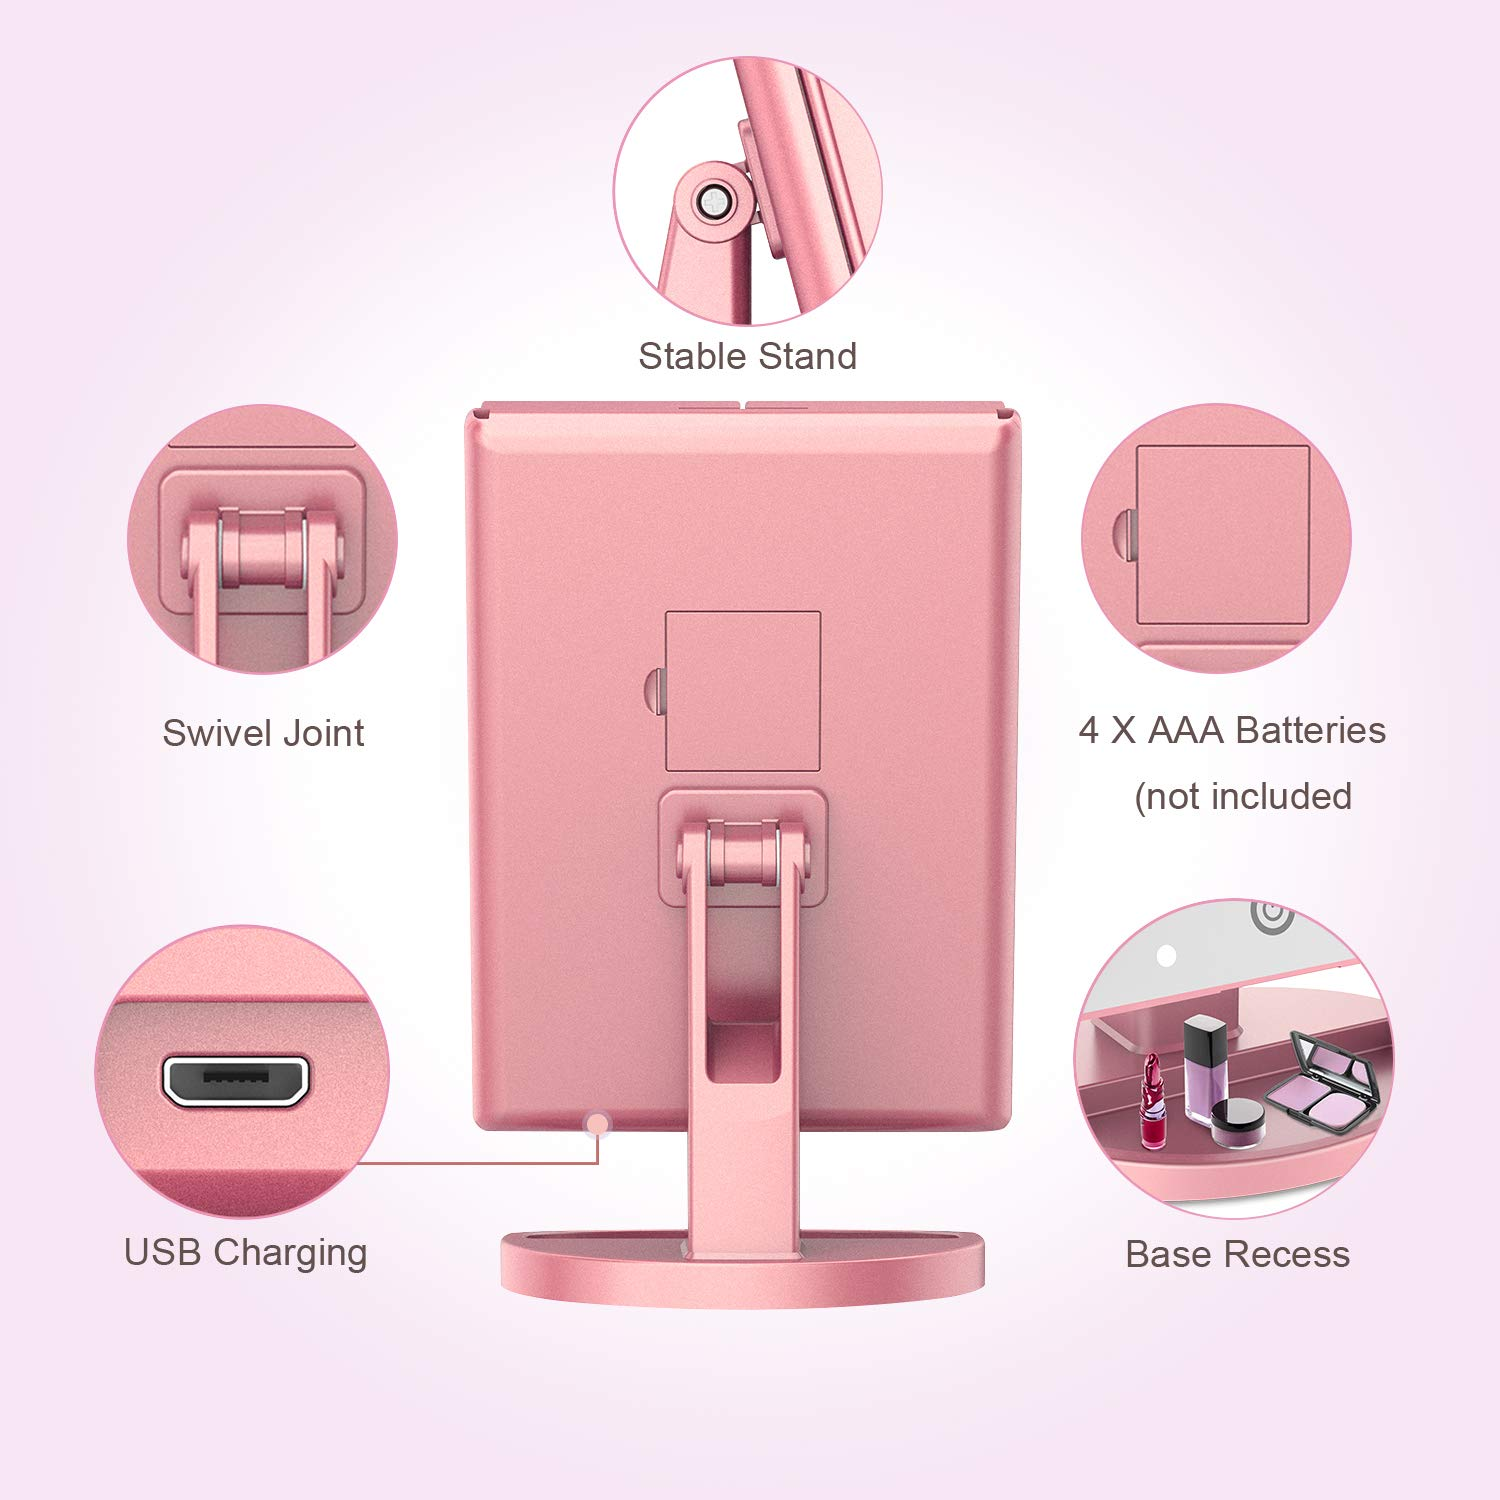 21 Led Lighted Mirror with Touch Screen,180/° Adjustable Rotation,Dual Power Supply,Portable Trifold Mirror 2X//3X Magnification BESTOPE Makeup Vanity Mirror with Lights